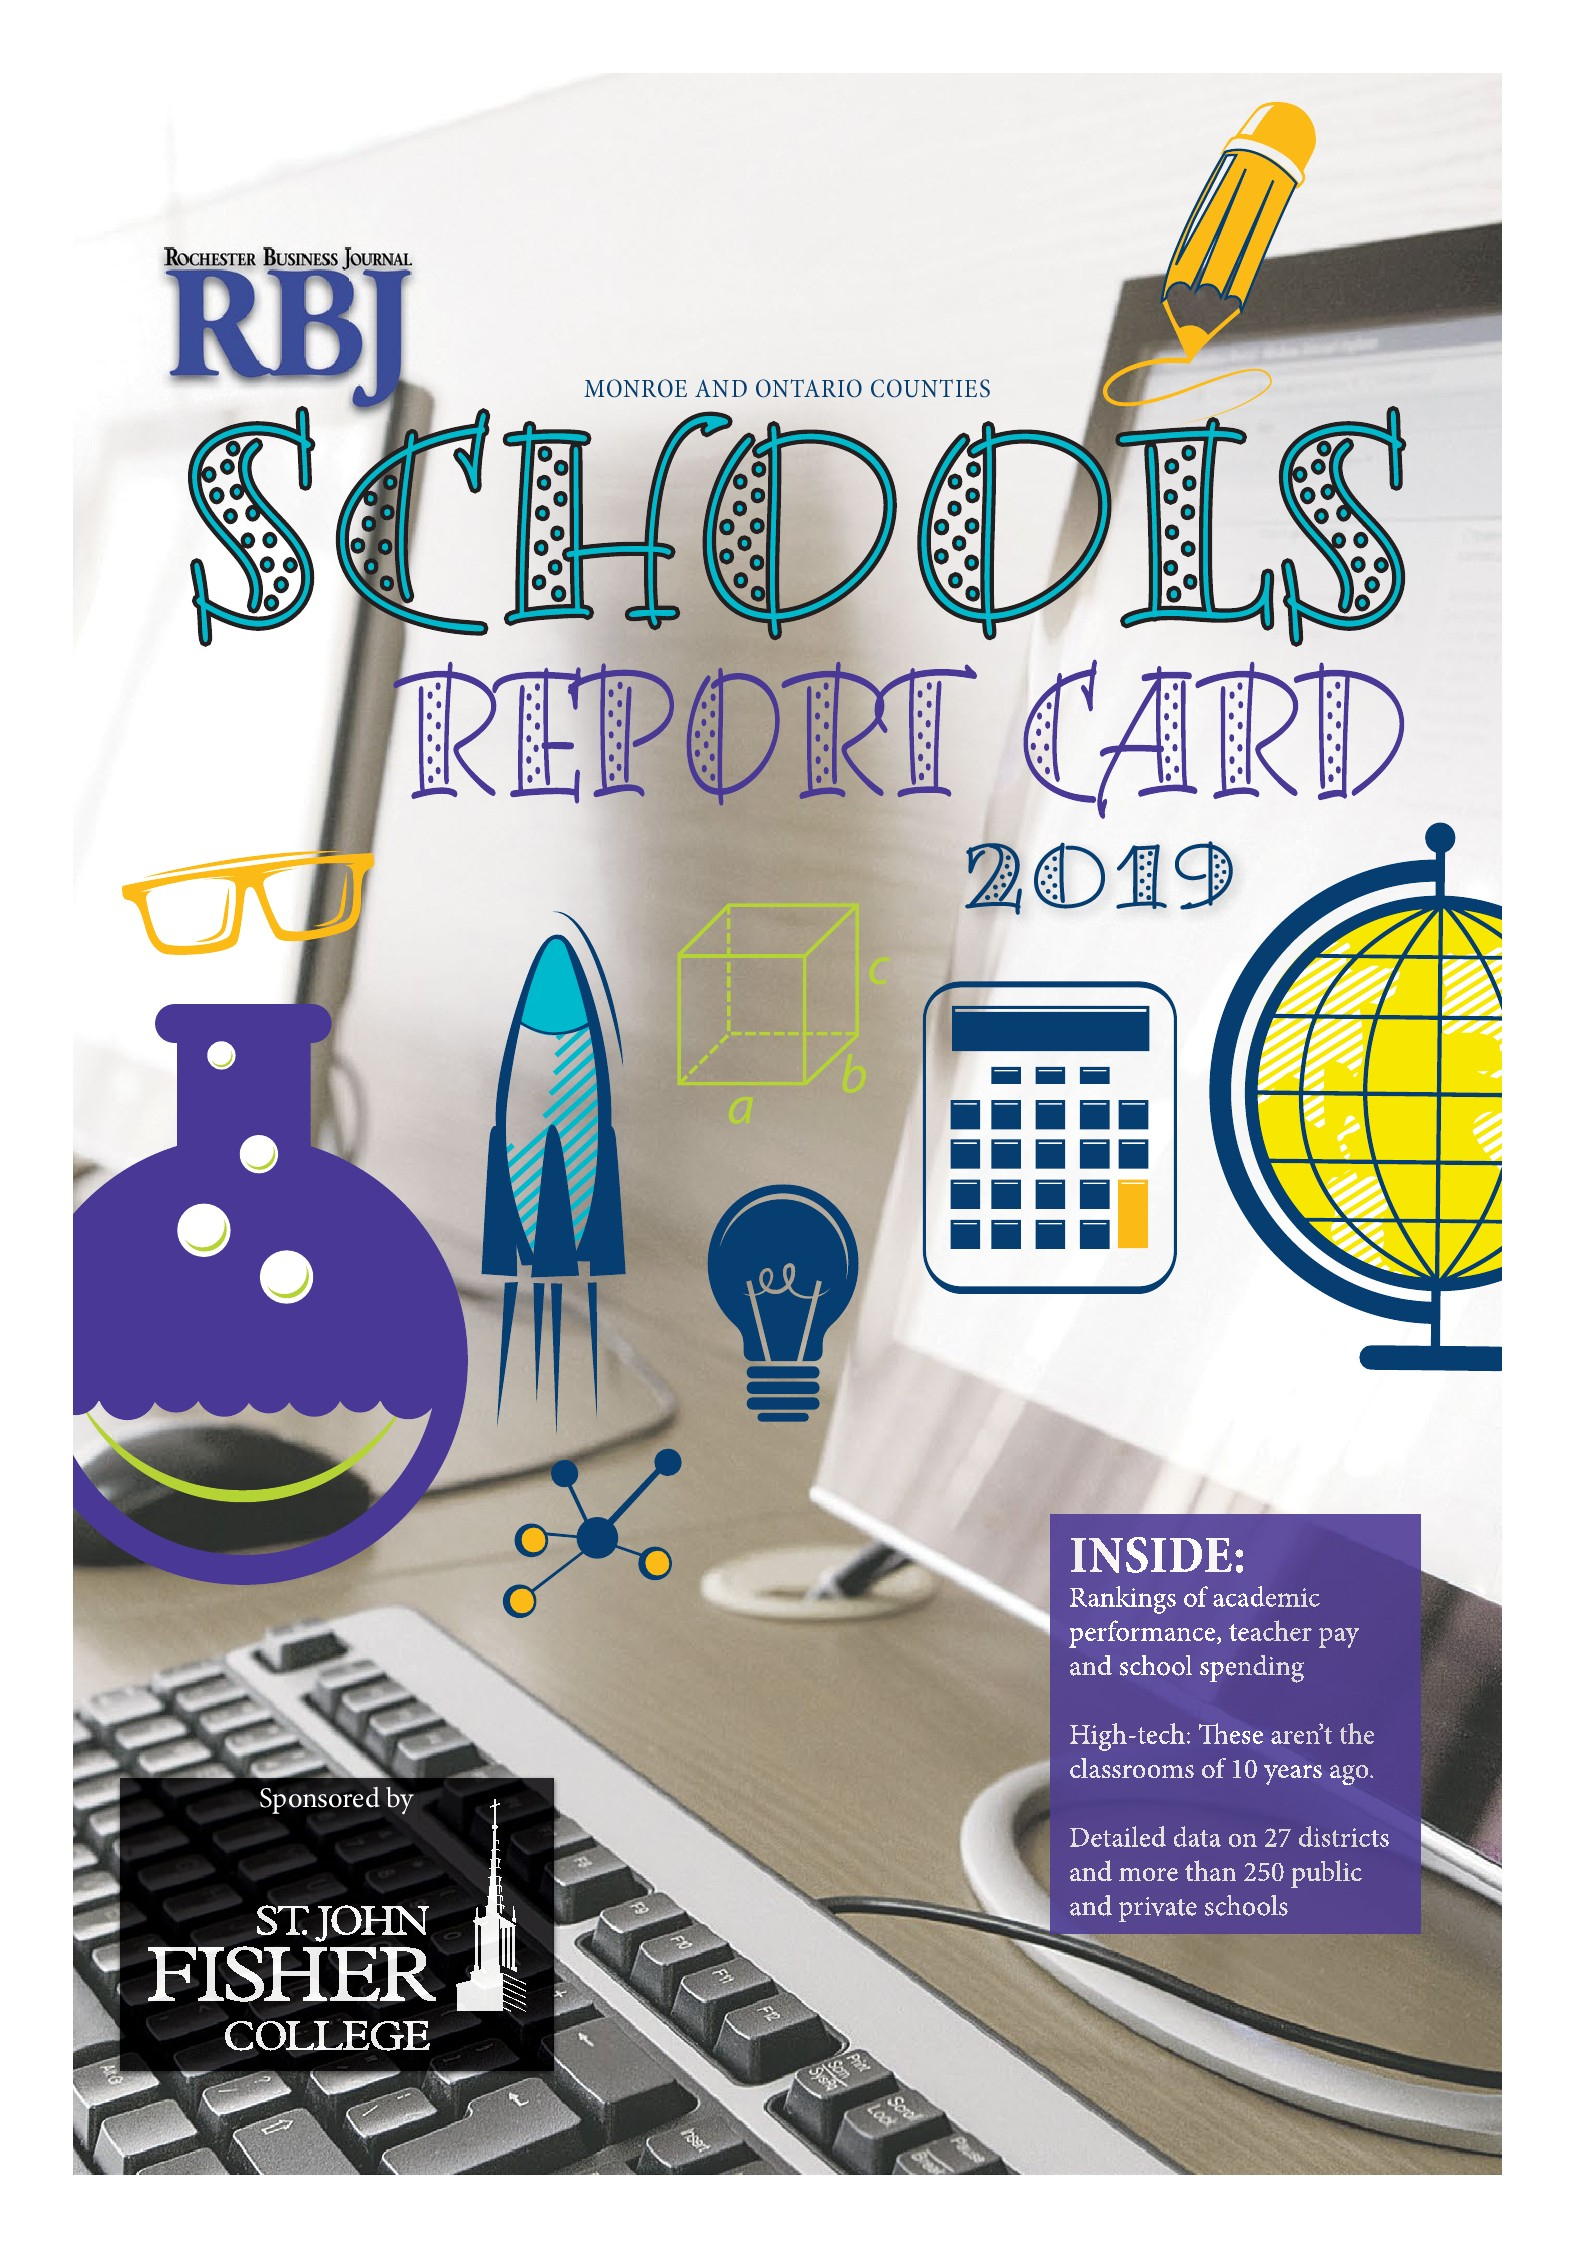 2019 Schools Report Card | Rochester Business Journal regarding J Hampton Moore School Calendar